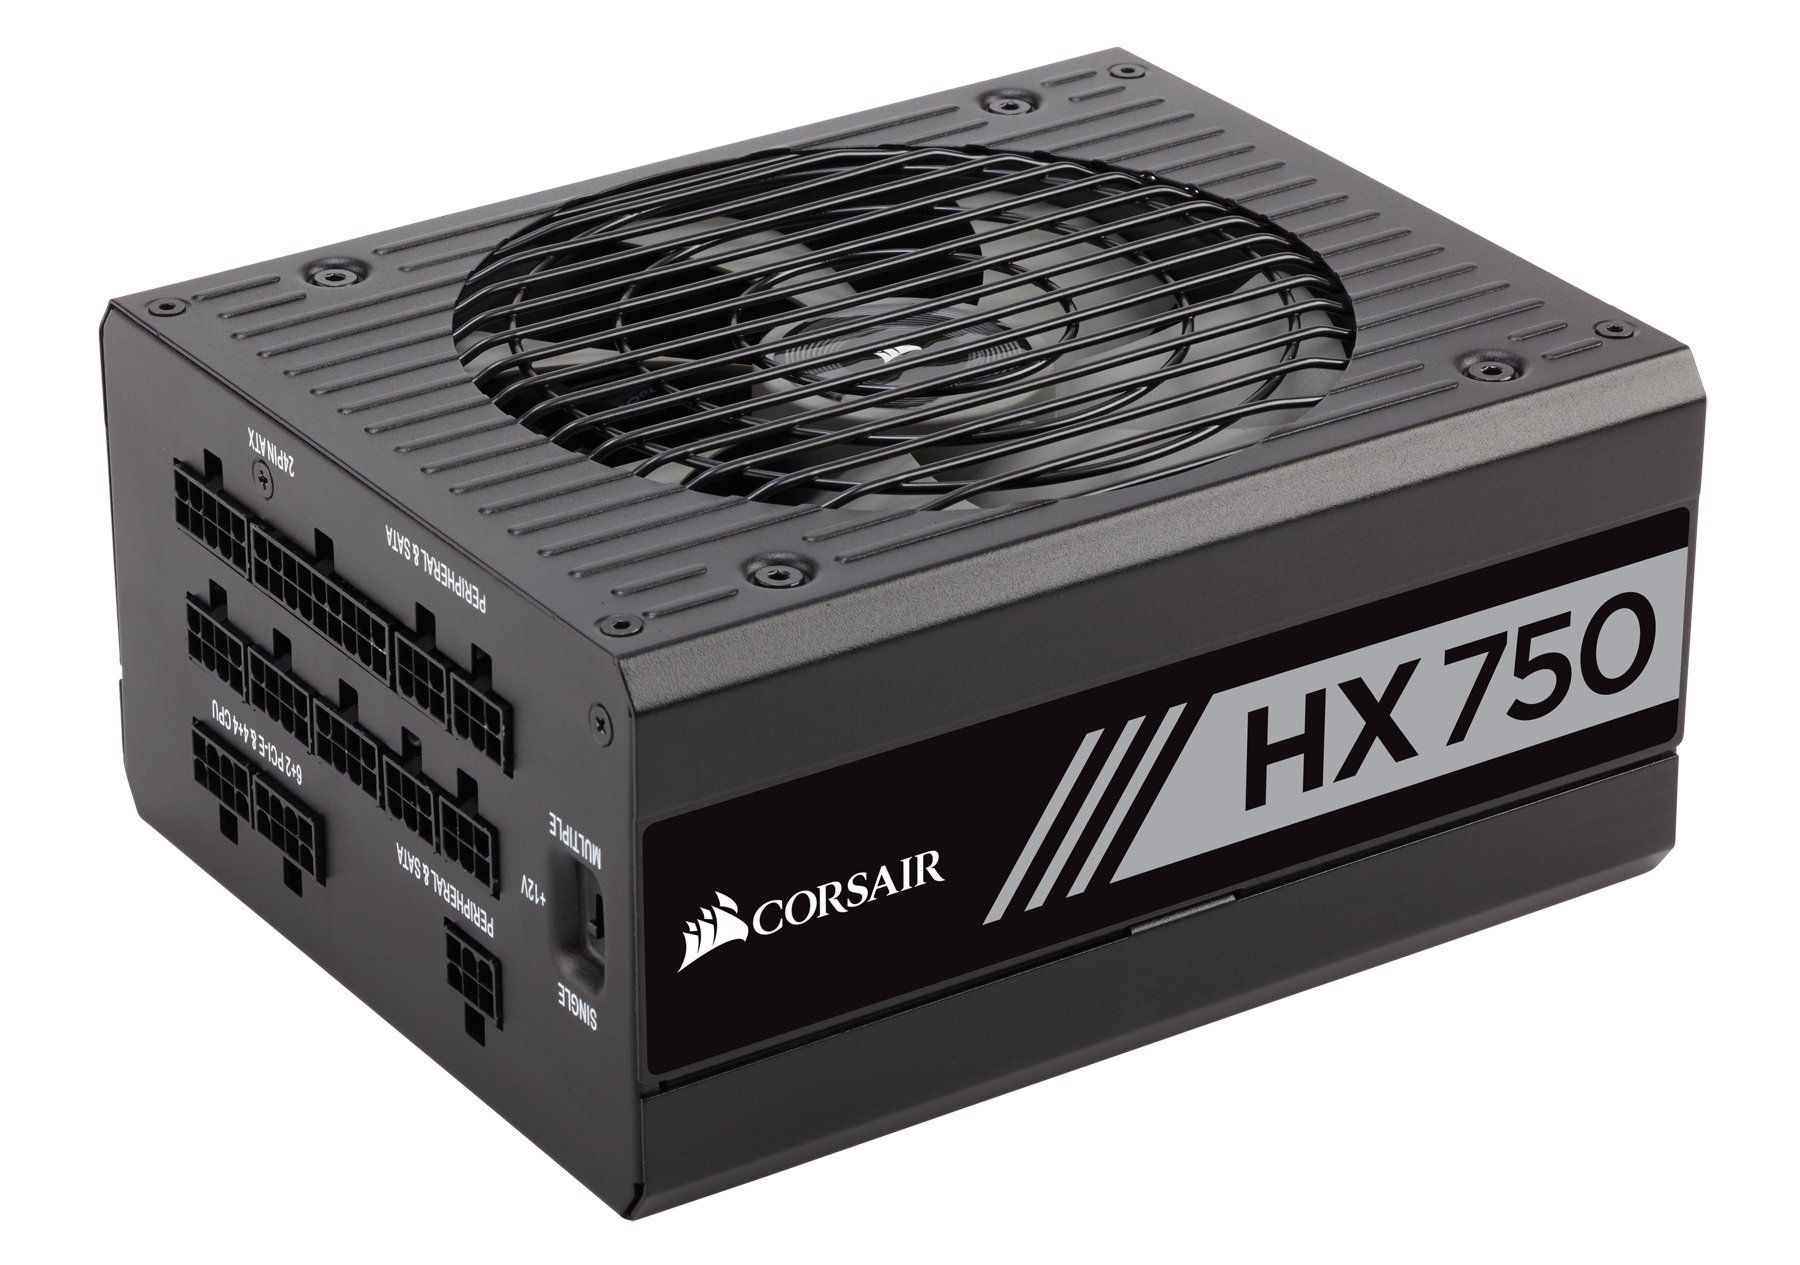 Corsair CP-9020137-NA HX750 750W 80 Plus Platinum High Performance Power Supply by Corsair